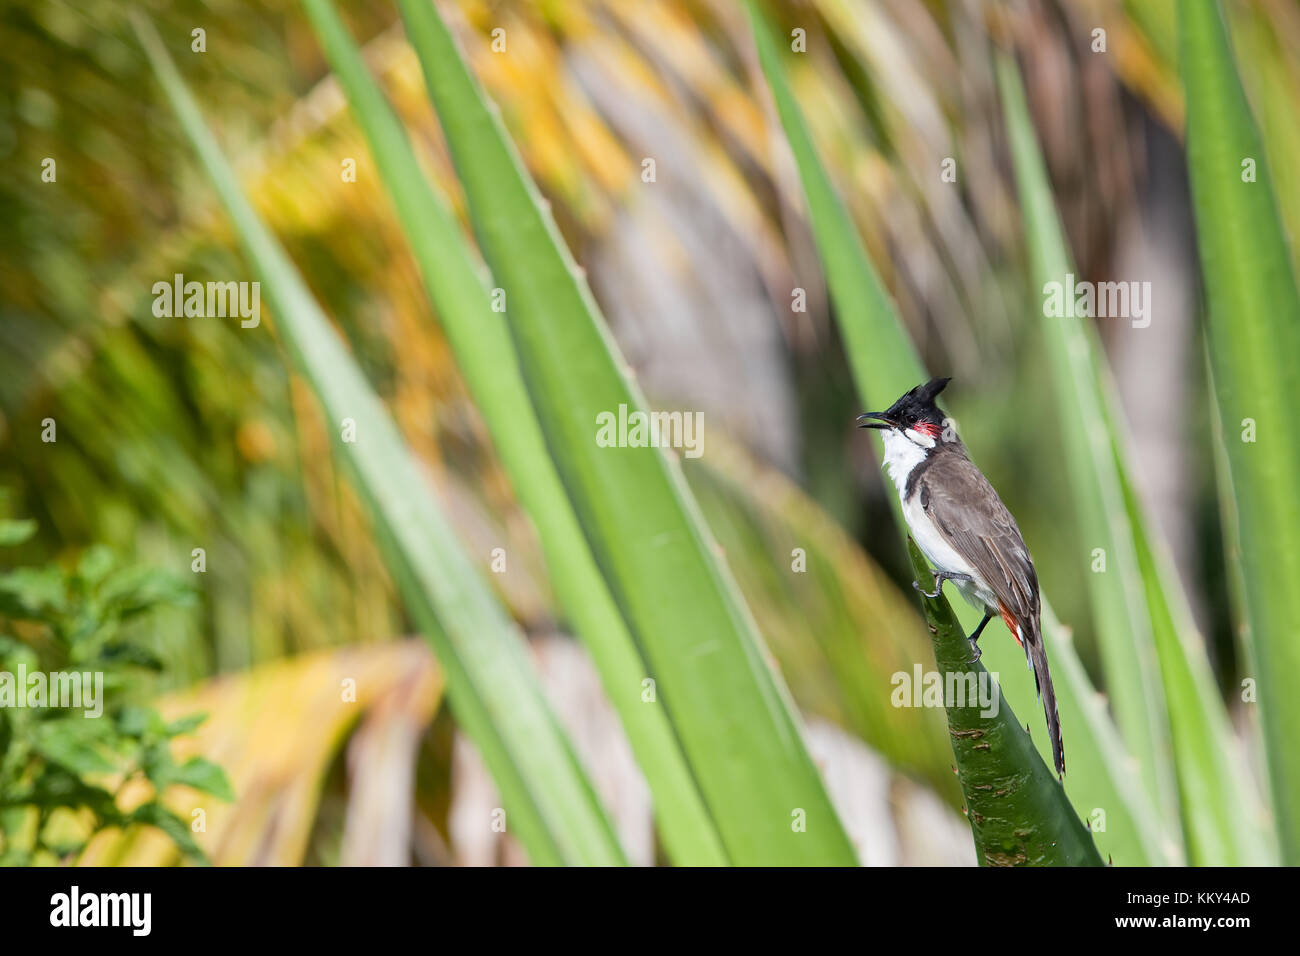 Mauritius - Africa - Chirping bird on a green leave - Stock Image